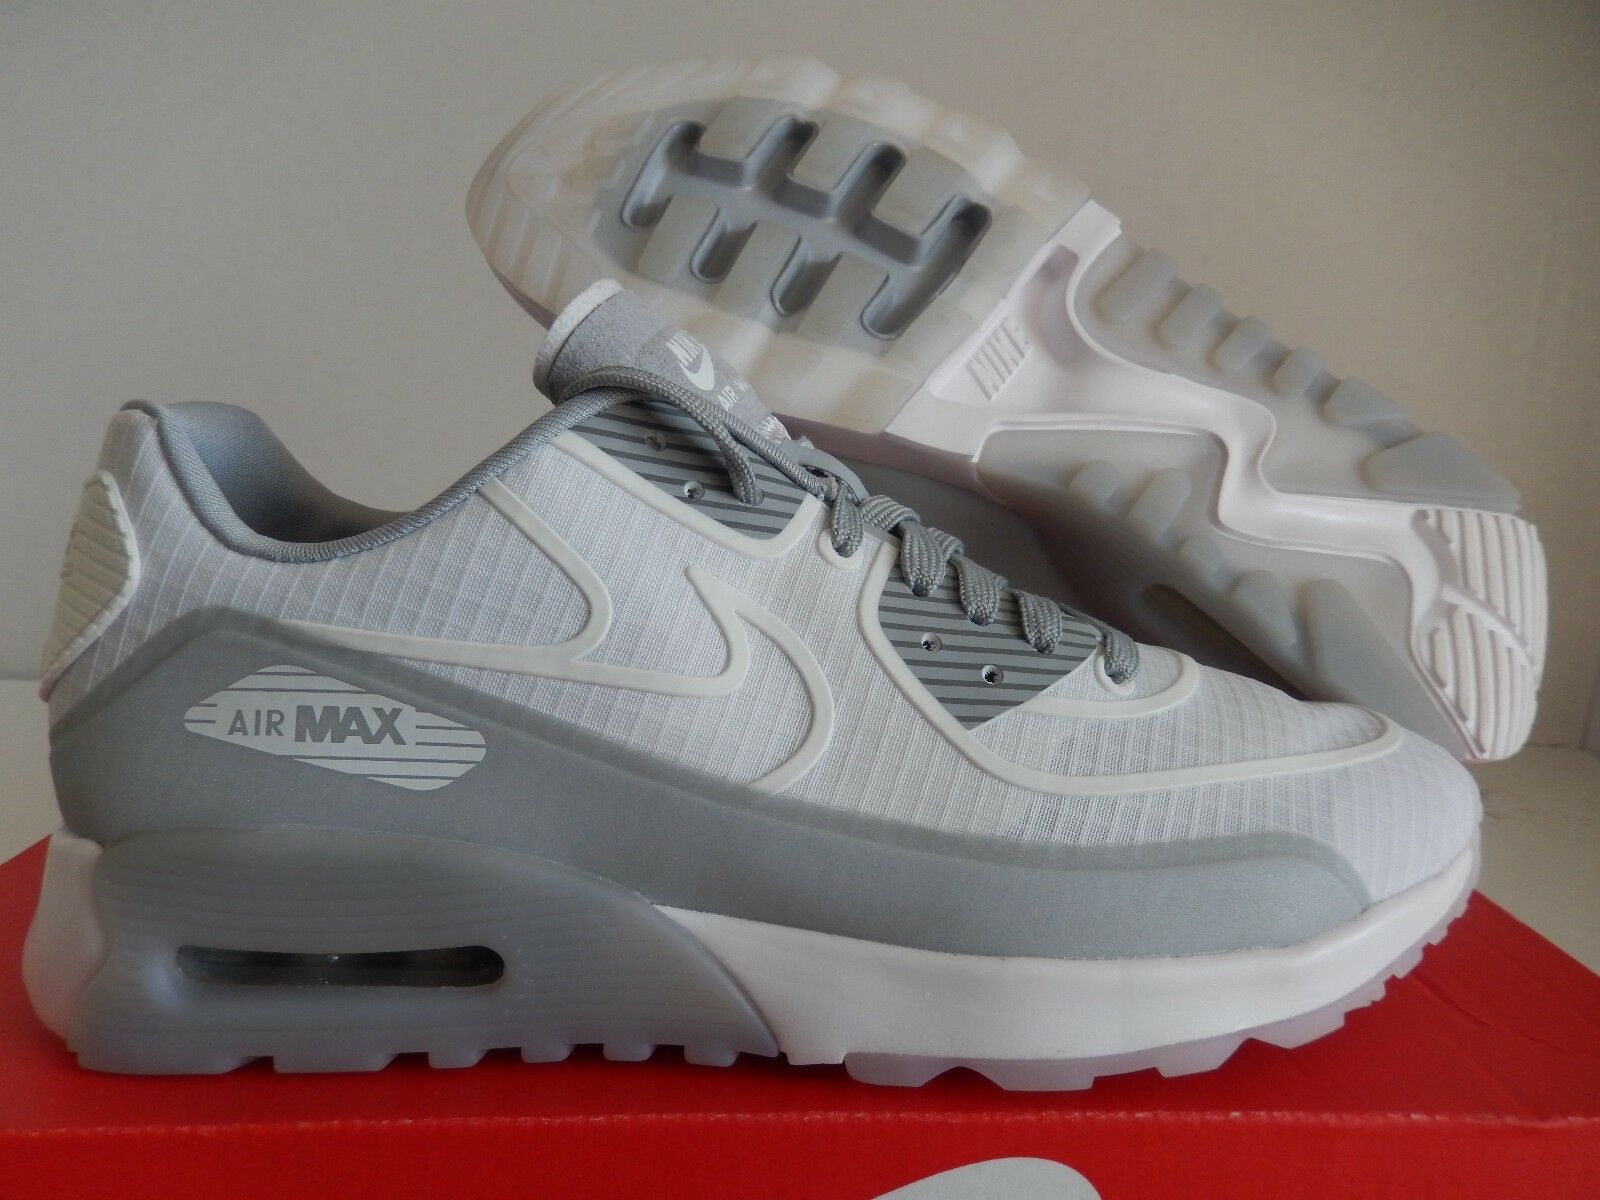 WMNS NIKE AIR MAX 90 ULTRA 2.0 SI WHITE-WHITE-WOLF GREY SZ 7.5 [881108-102]